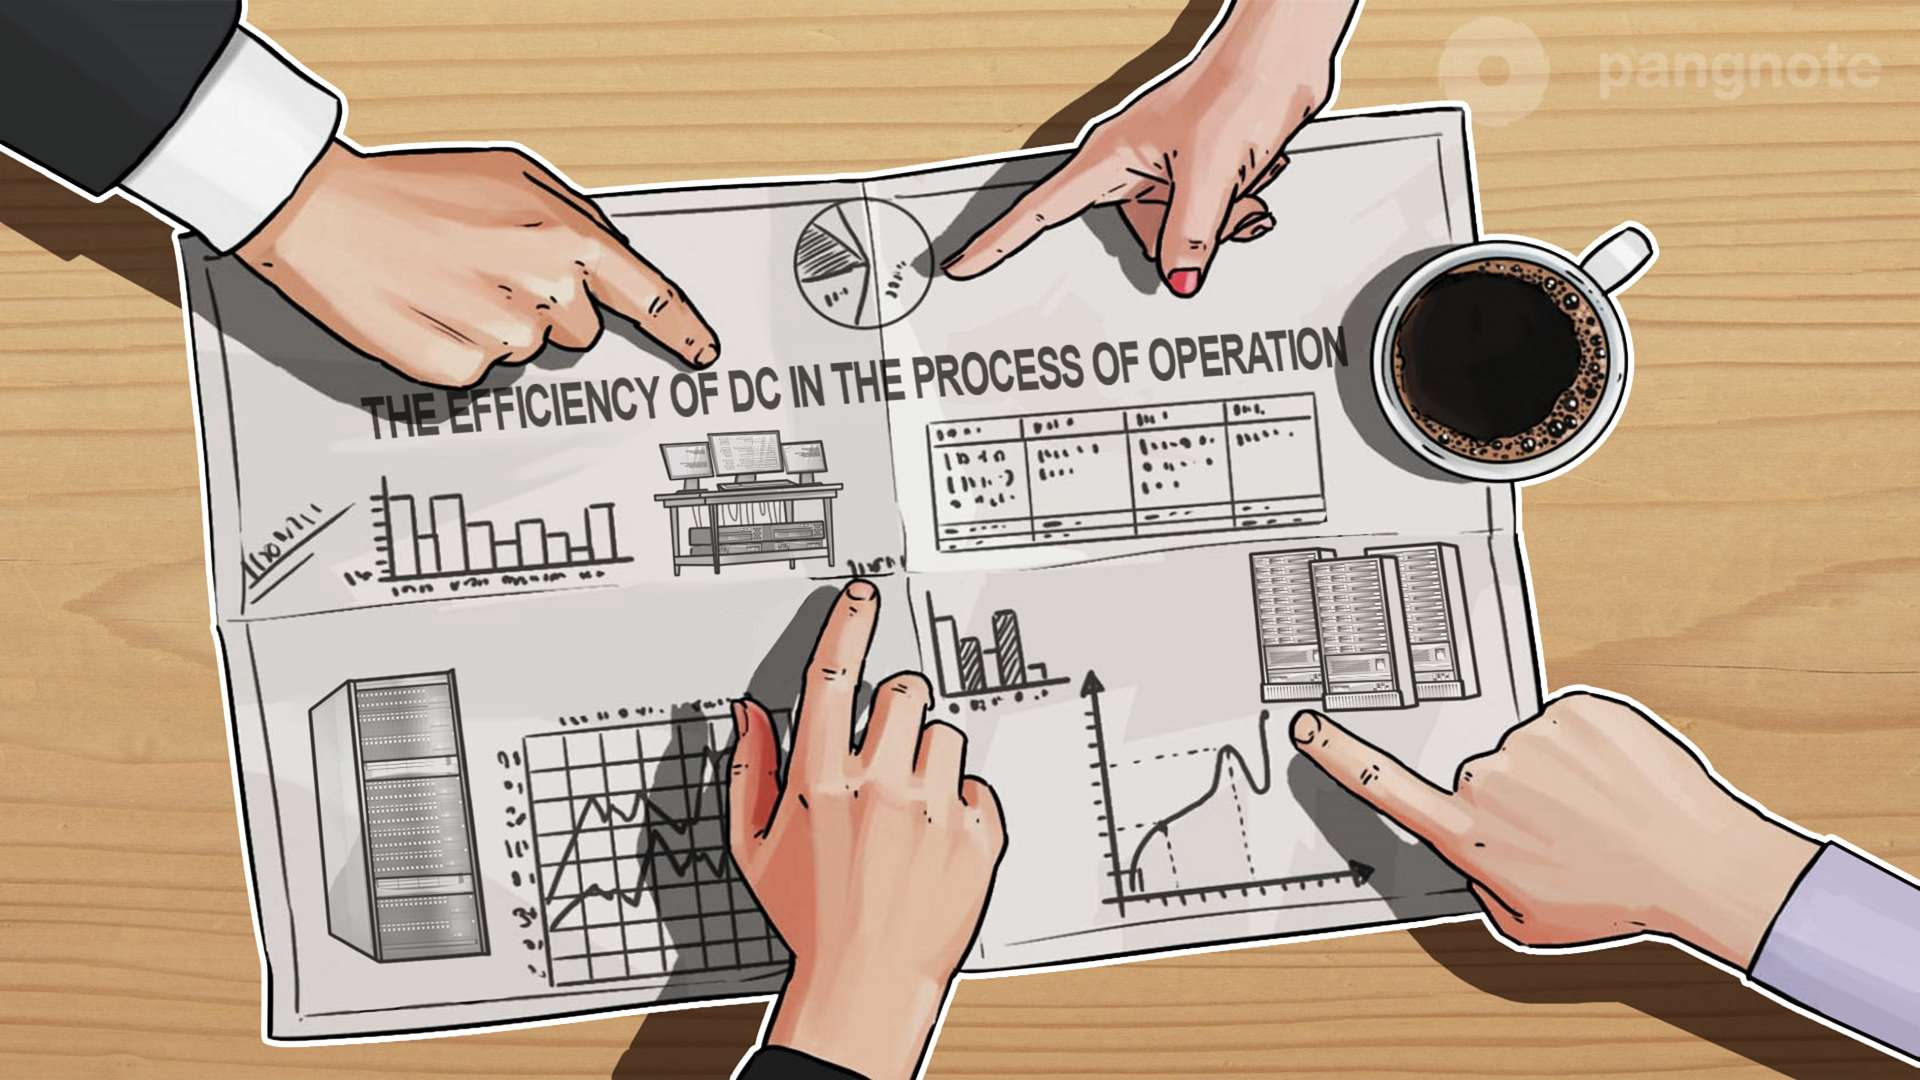 How to improve the efficiency of DC in the process of operation